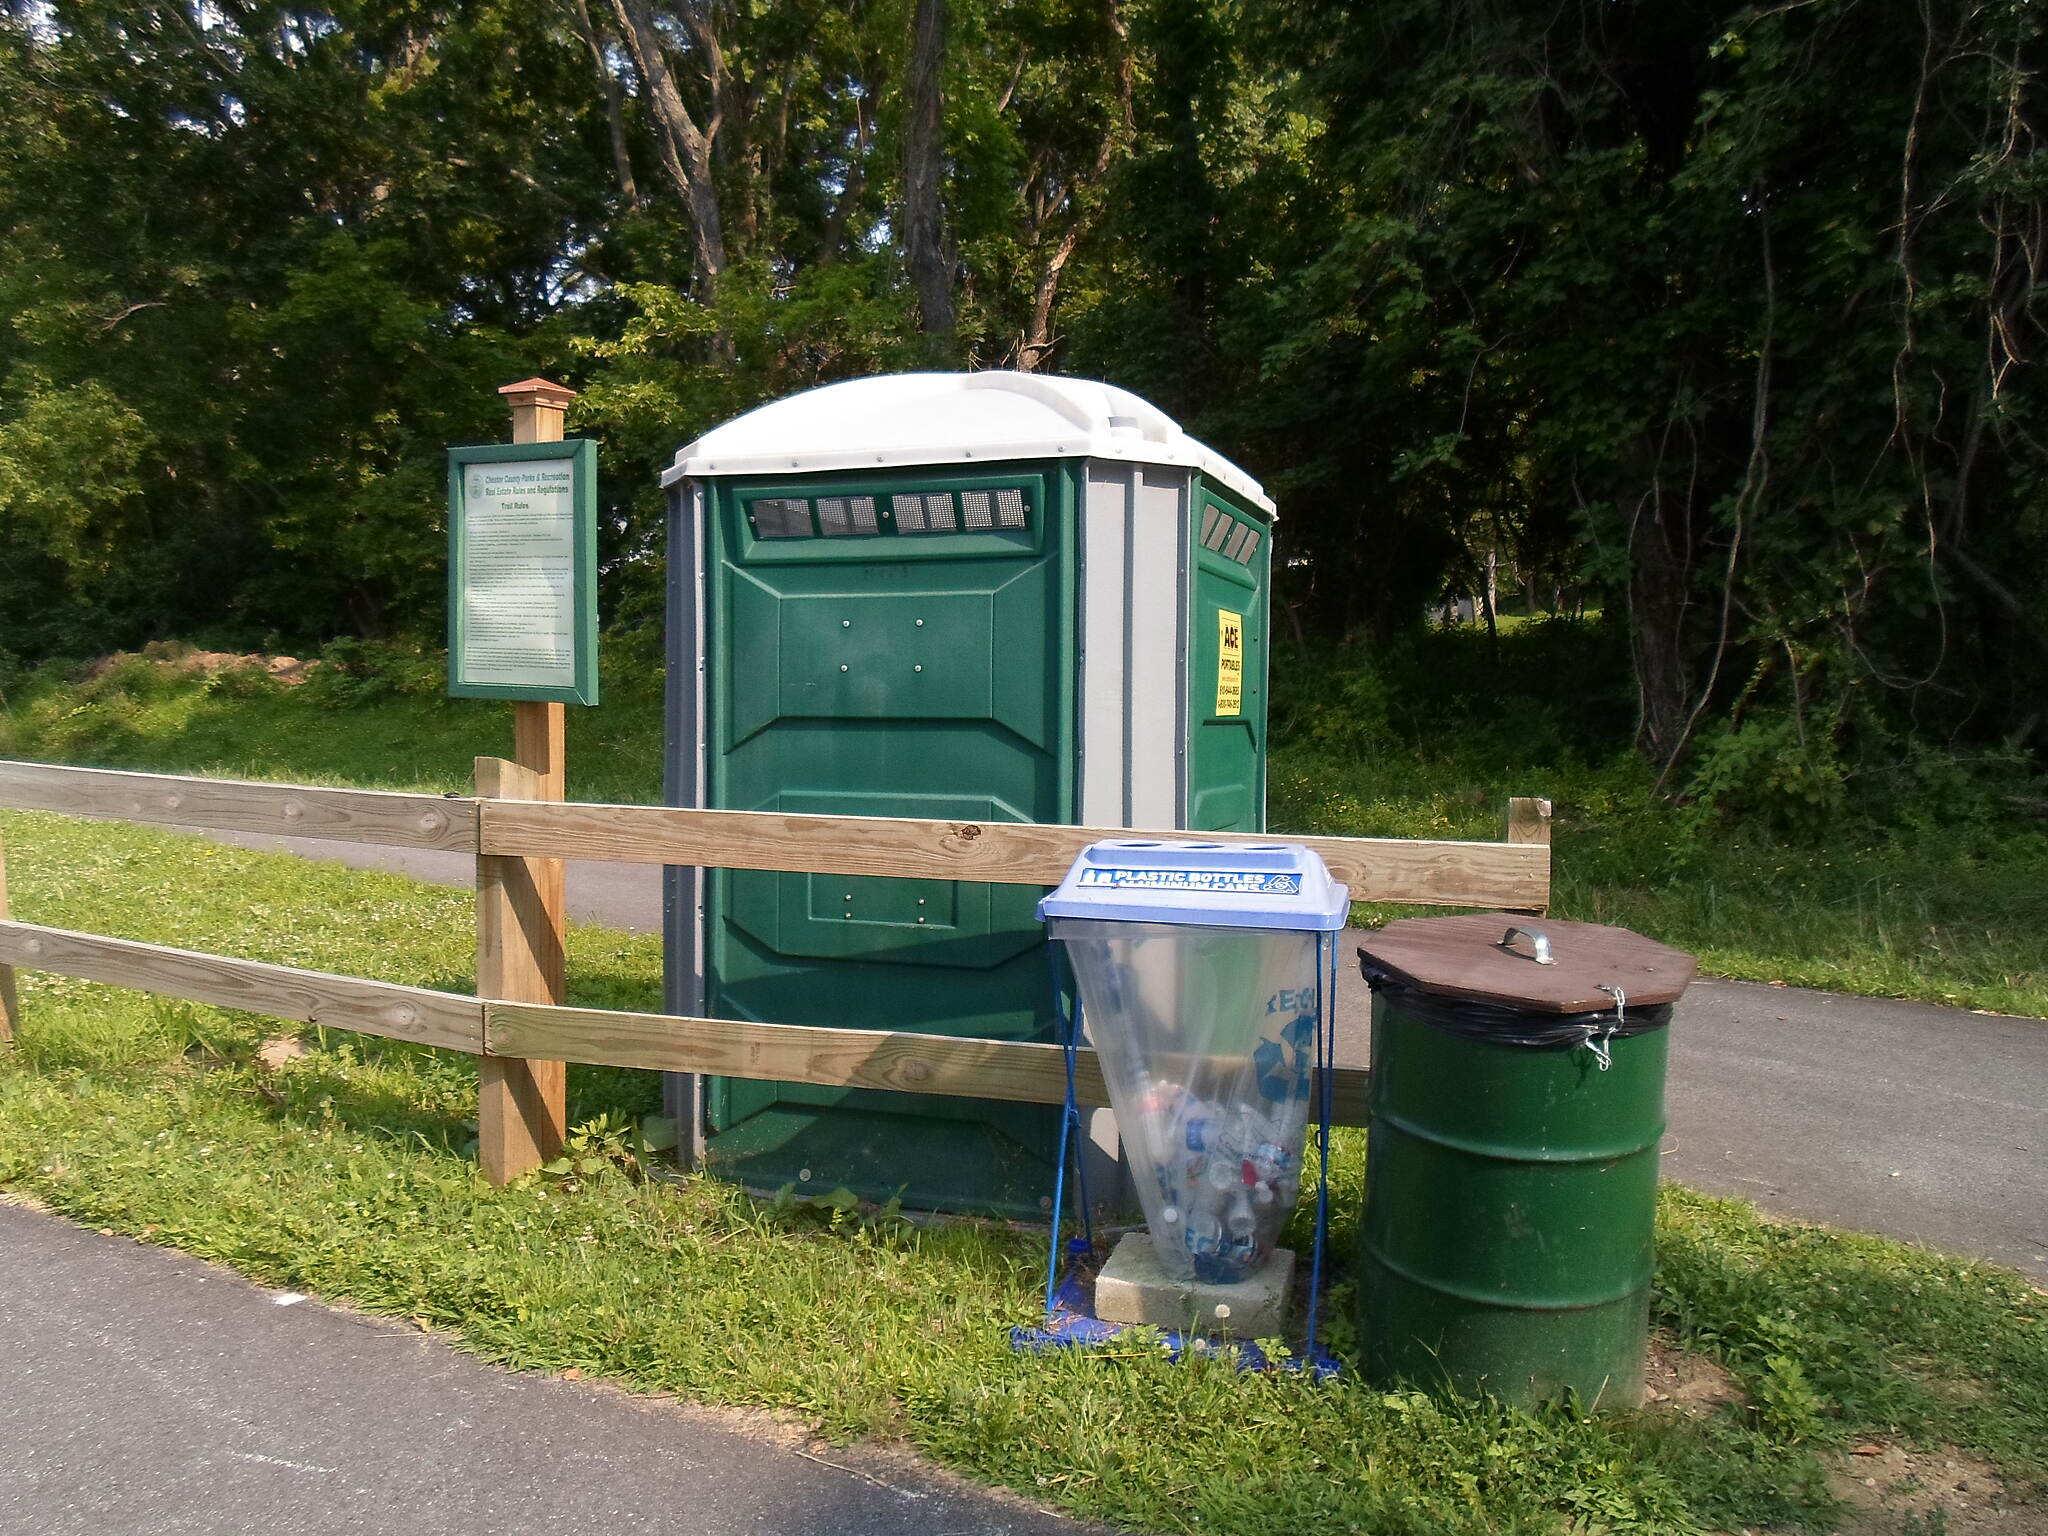 Chester Valley Trail Chester Valley Trail This chemical toilet, trash can and recycling bag are situated at the junction between the trail and the access path to Valley Road.